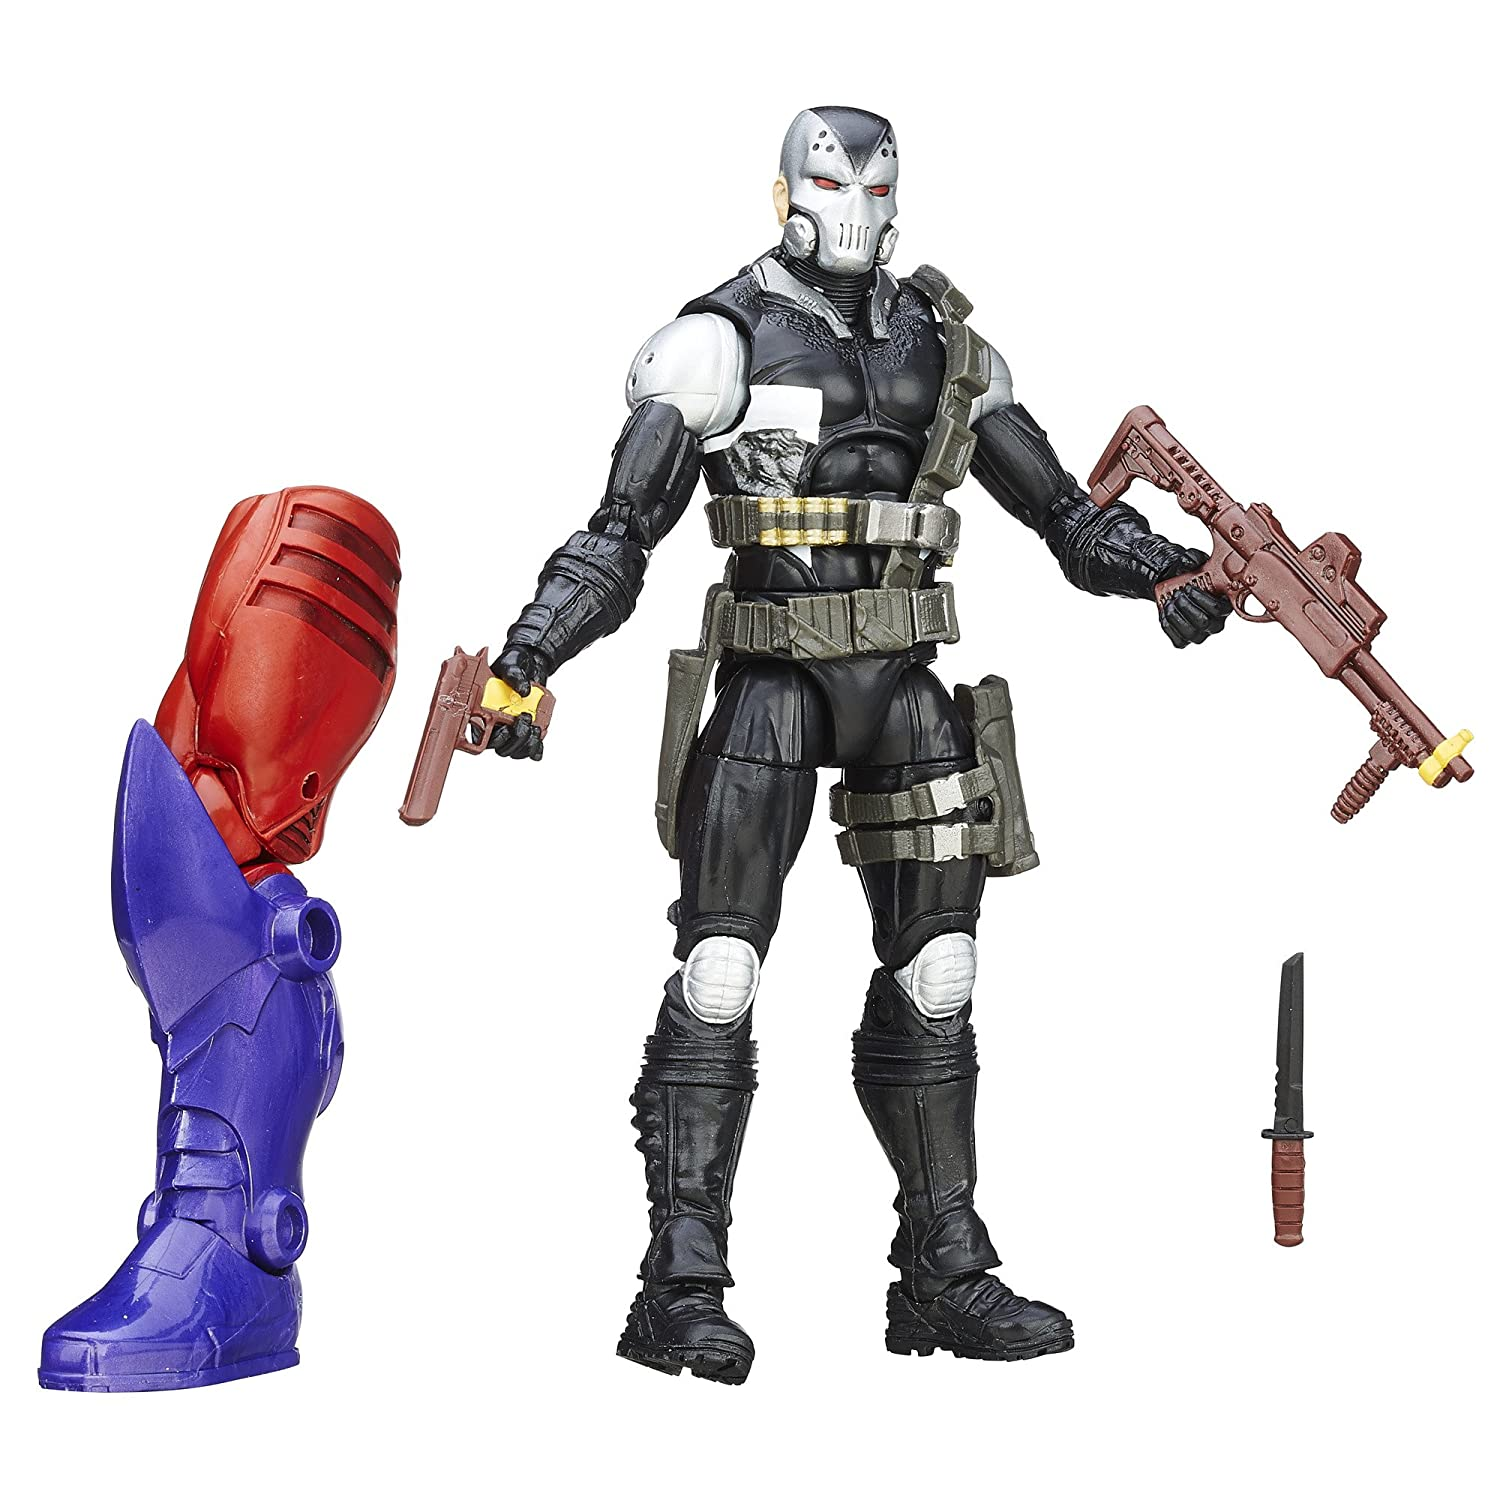 Marvel Legends Serie mercenarios de Mayhem Flagelo